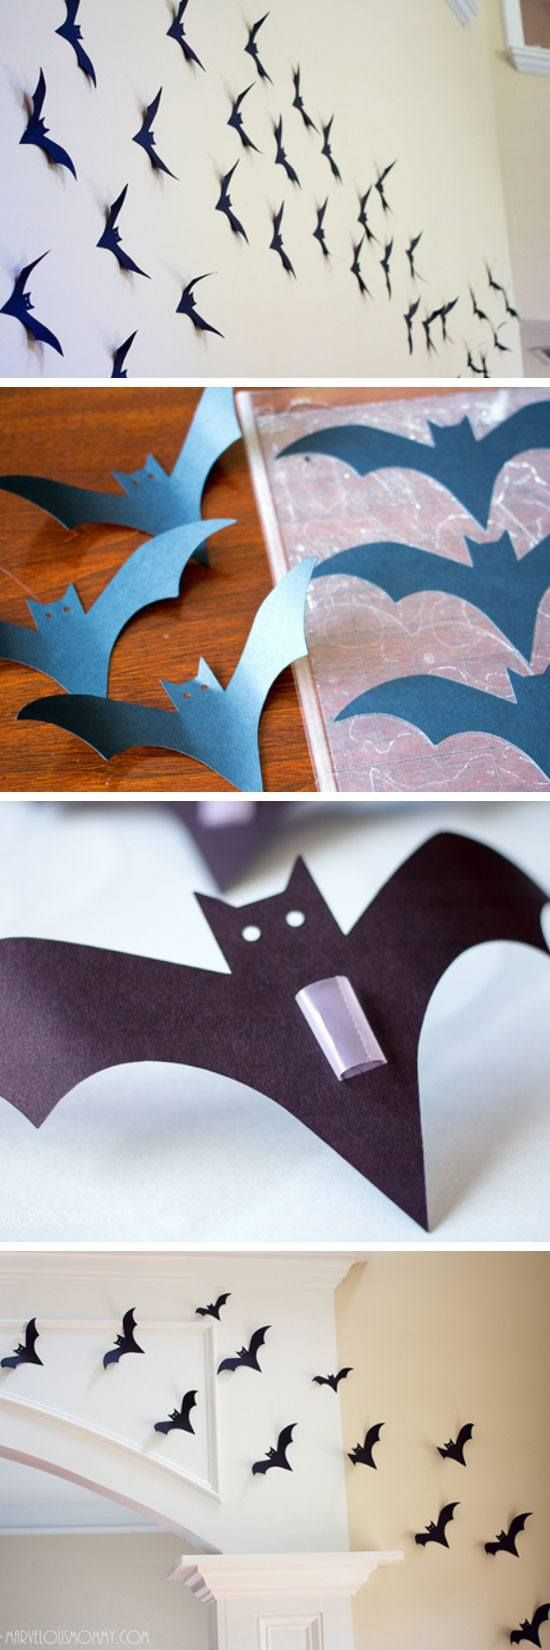 25 diy halloween decorating ideas for kids on a budget - Diy Halloween Decorations For Kids